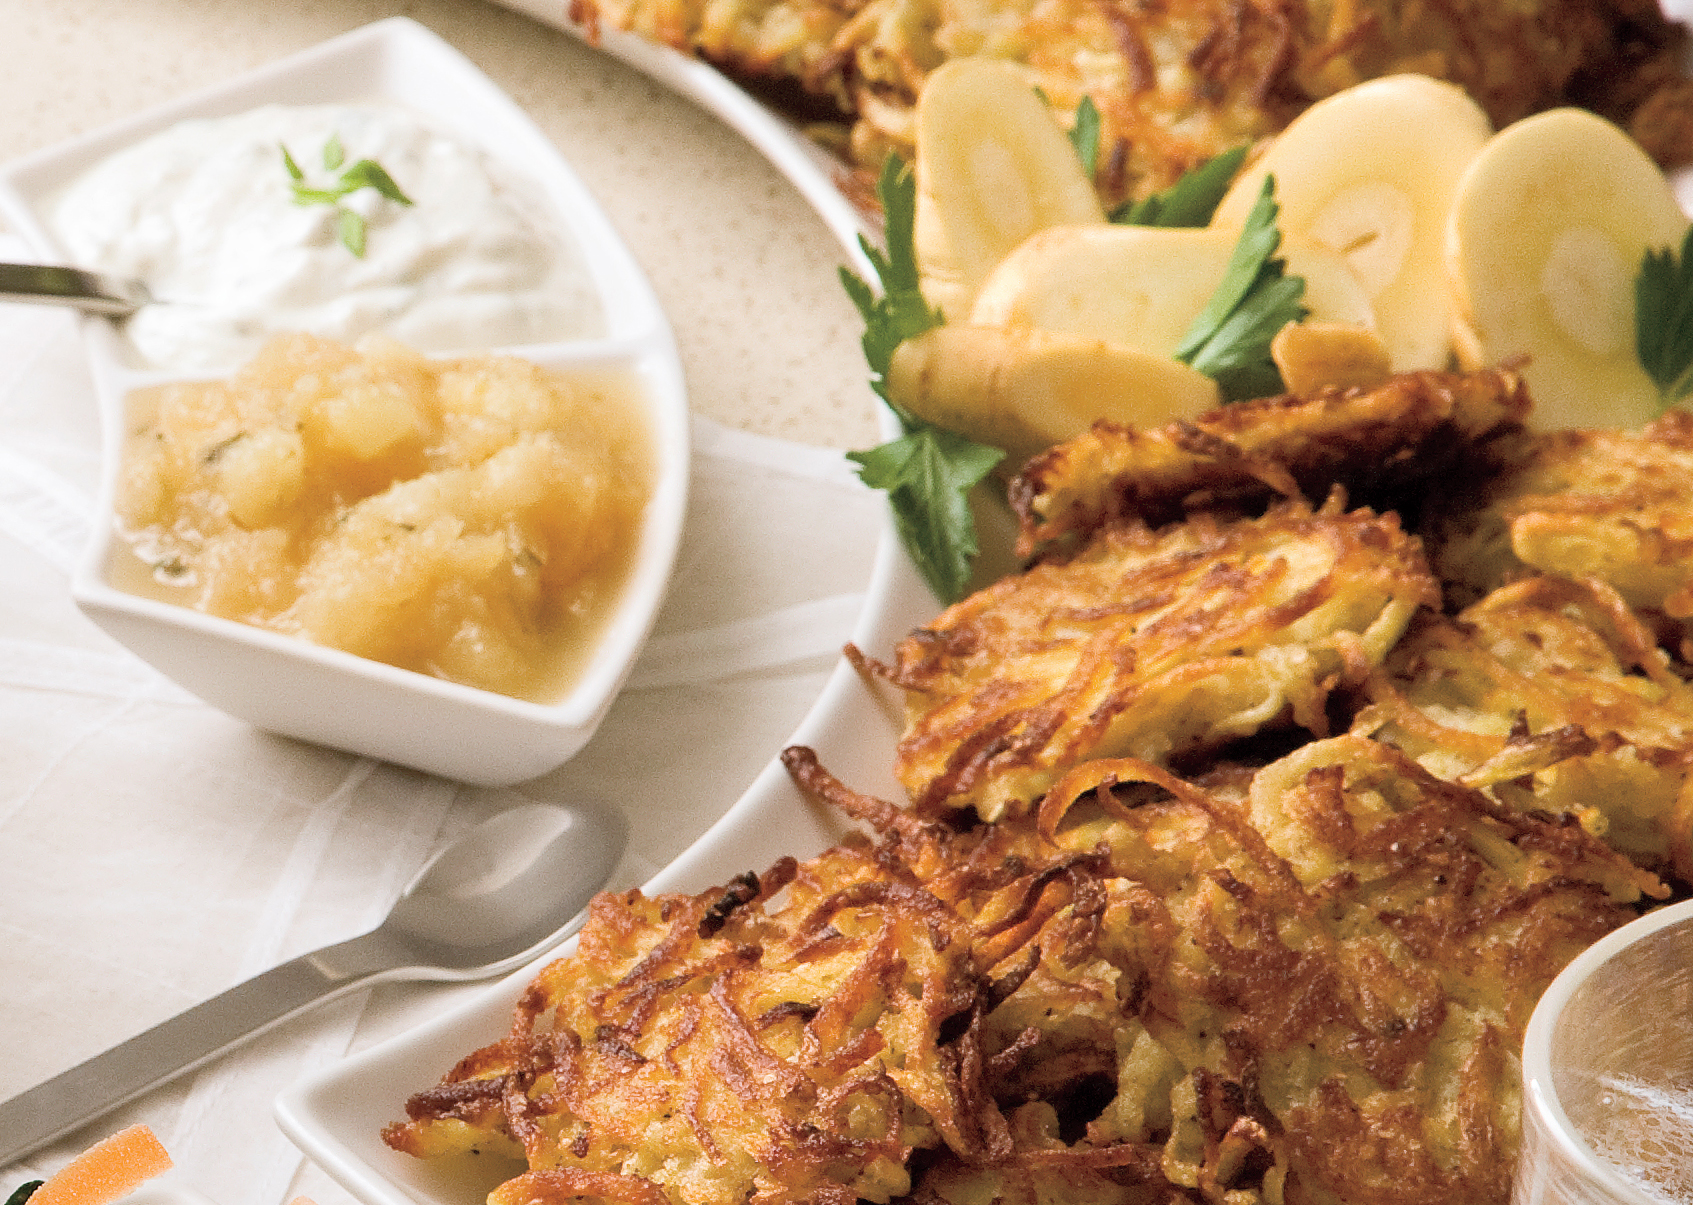 RX_1705_Latke Recipes_Golden Potato-Parsnip Latkes